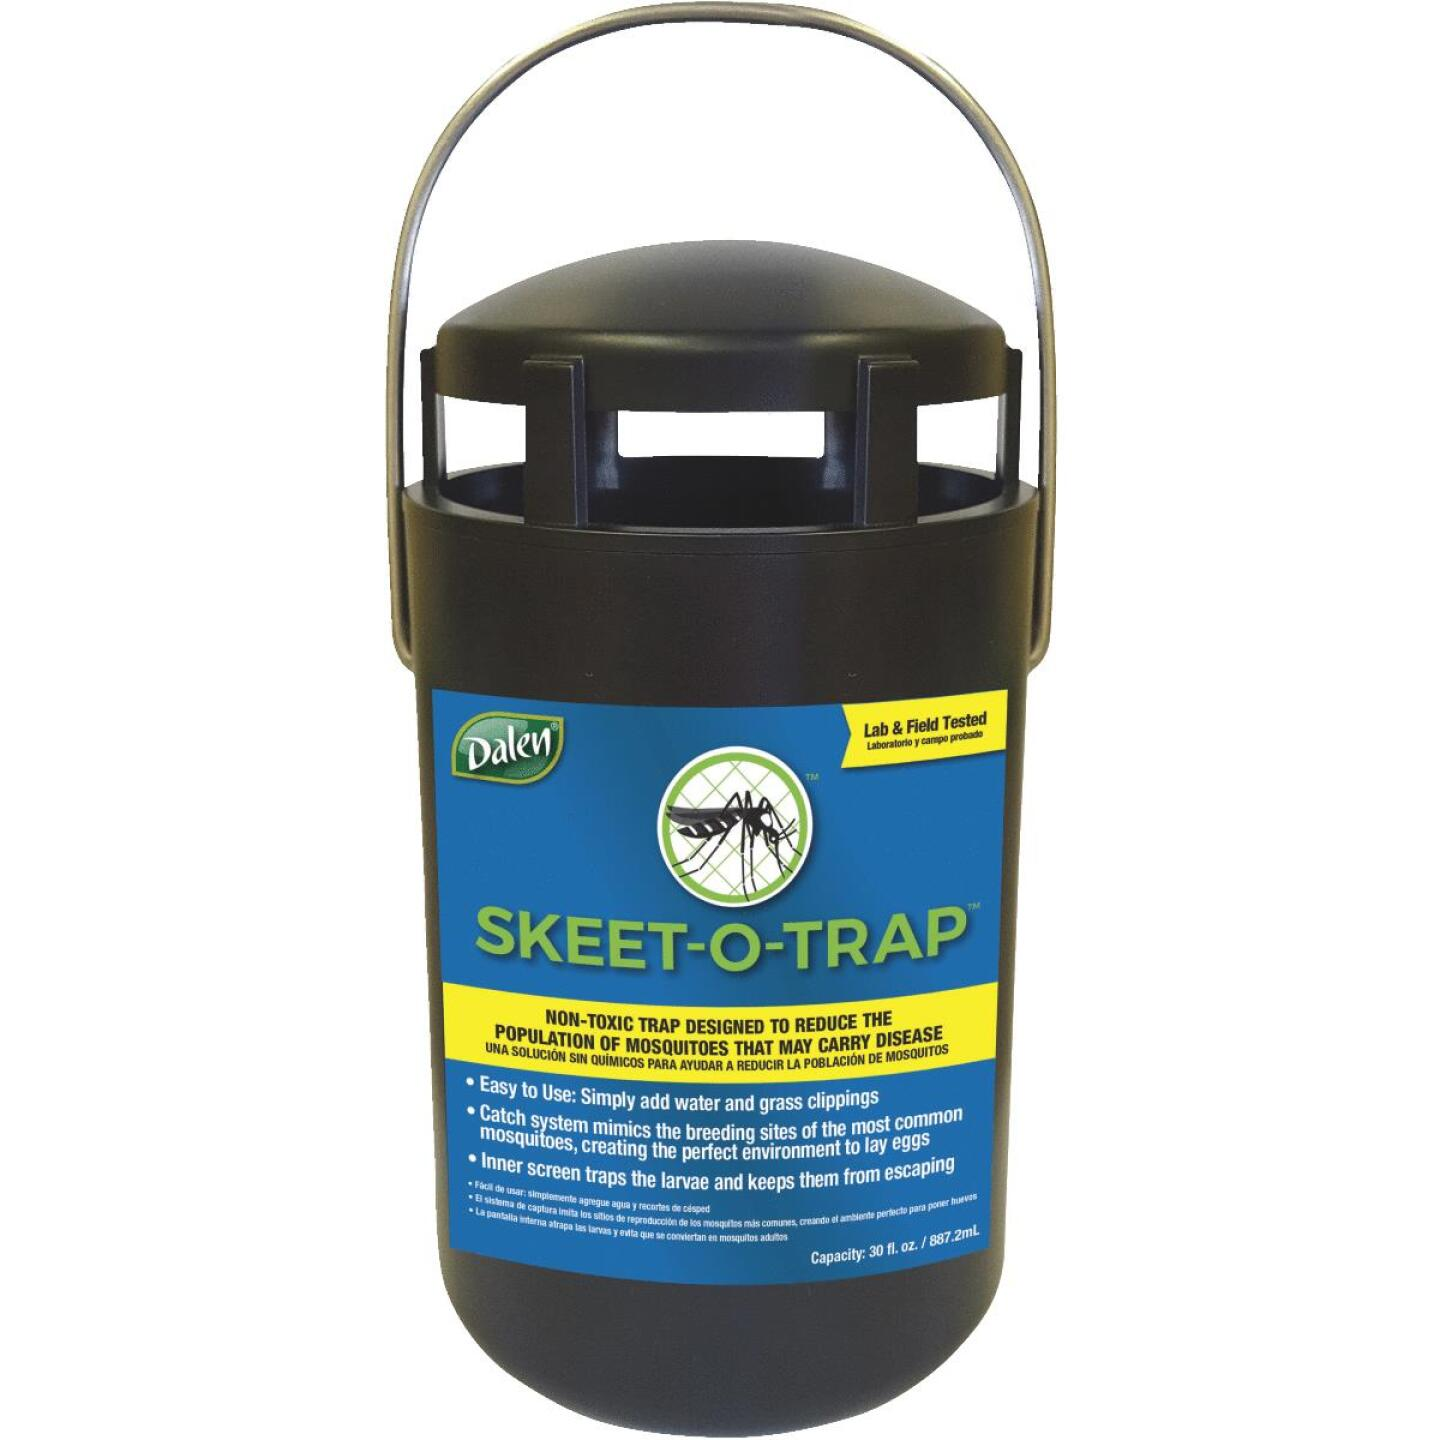 Dalen Skeet-O-Trap All Natural Mosquito Trap Image 1